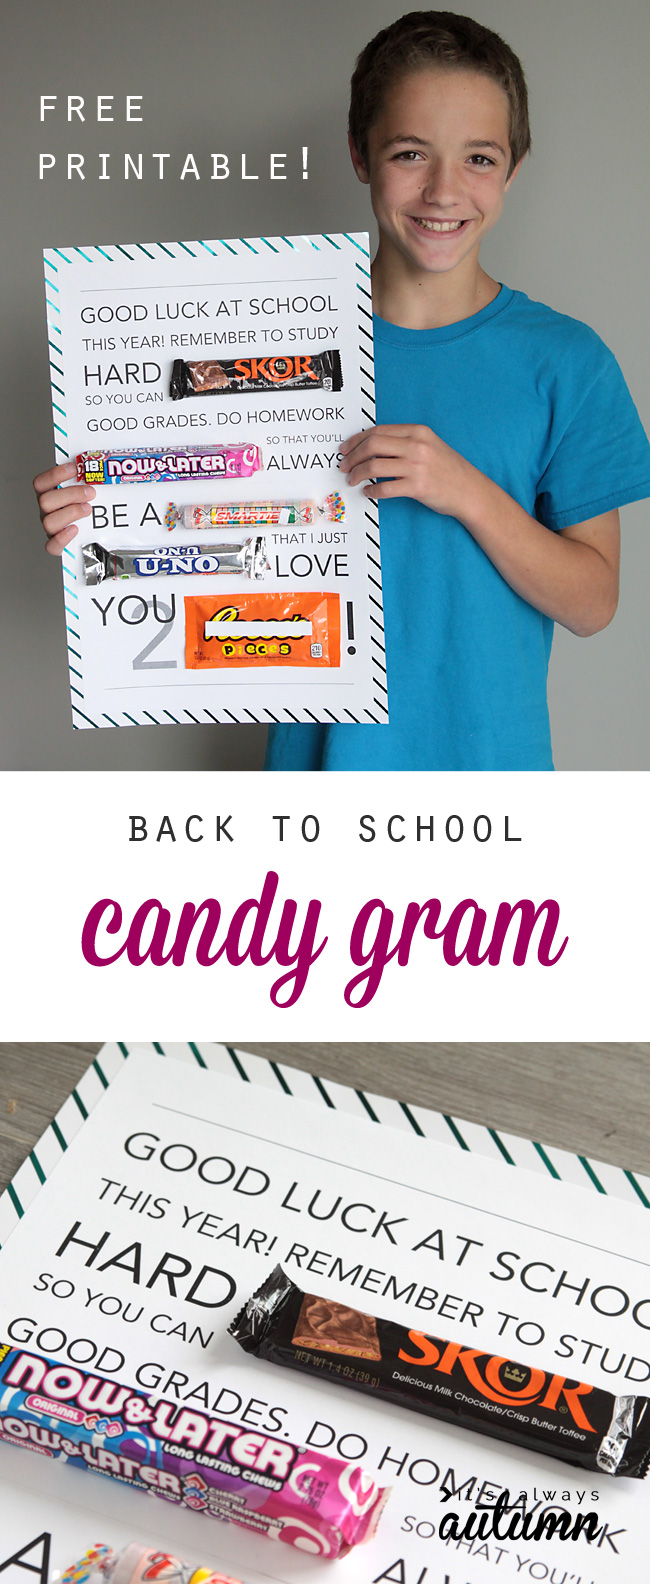 Back to school candy gram - my kids would love to get one of these on the first day of school! Free printable for a candy poster.